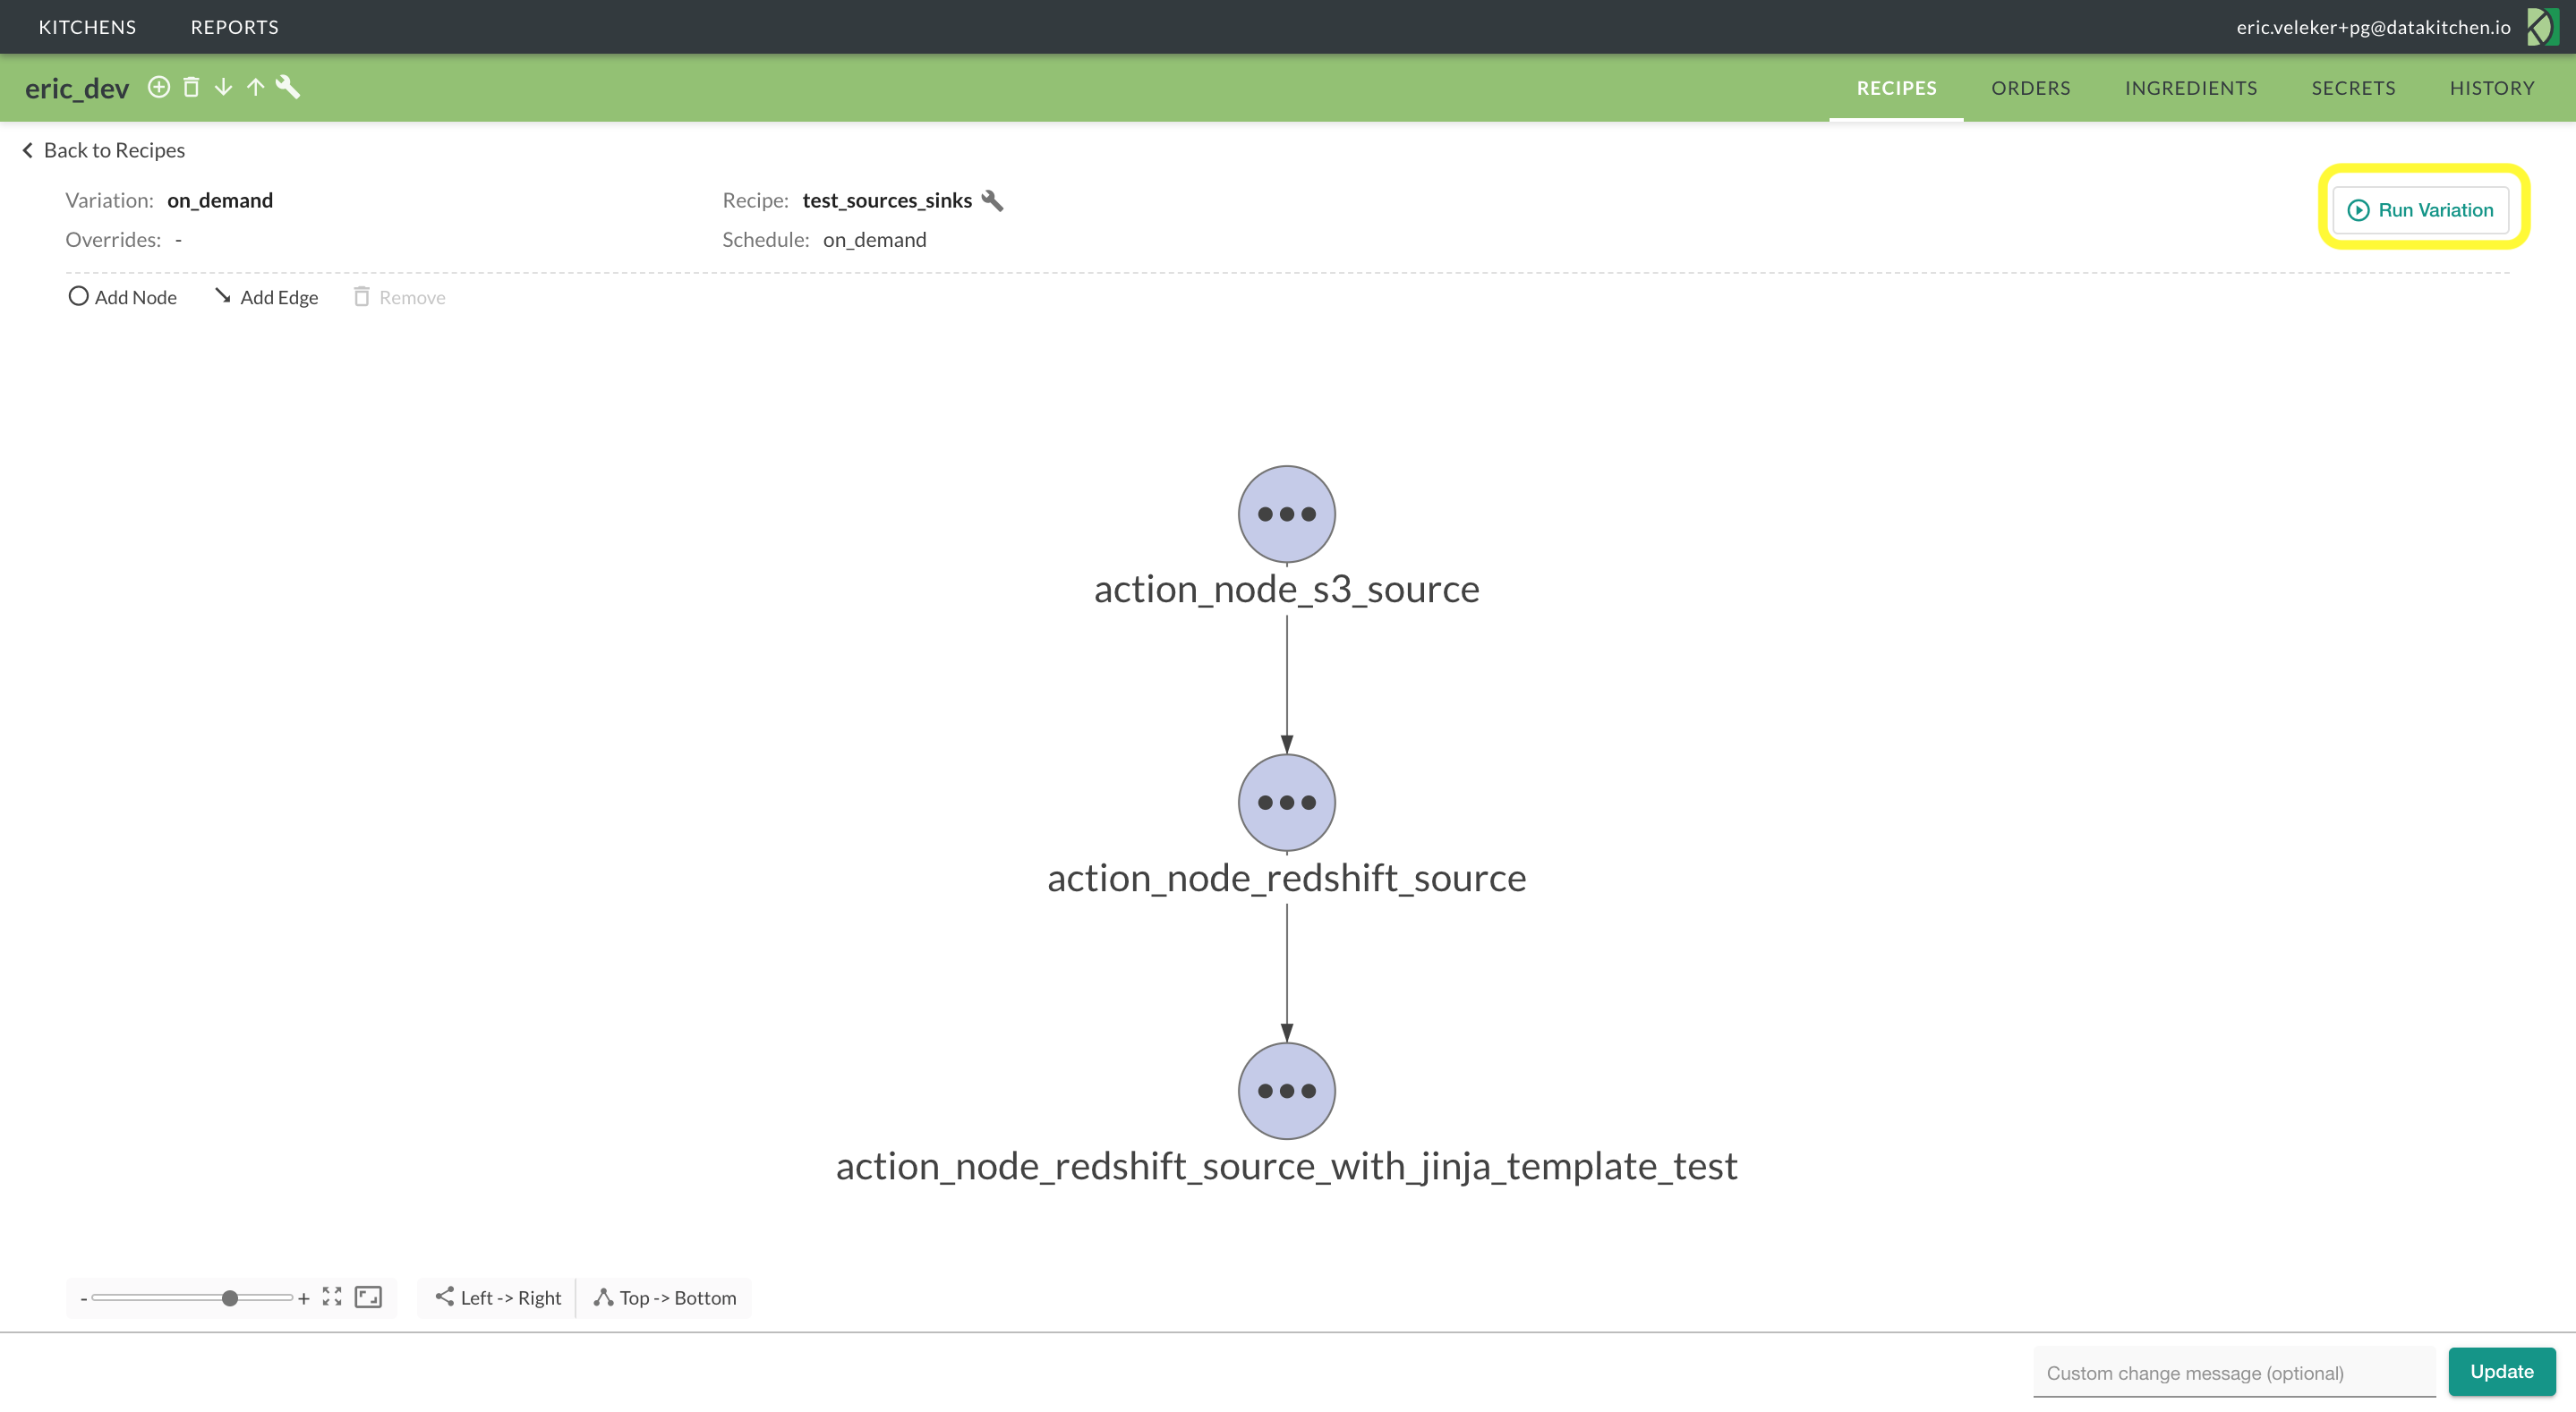 Run an order from the variation graph view.